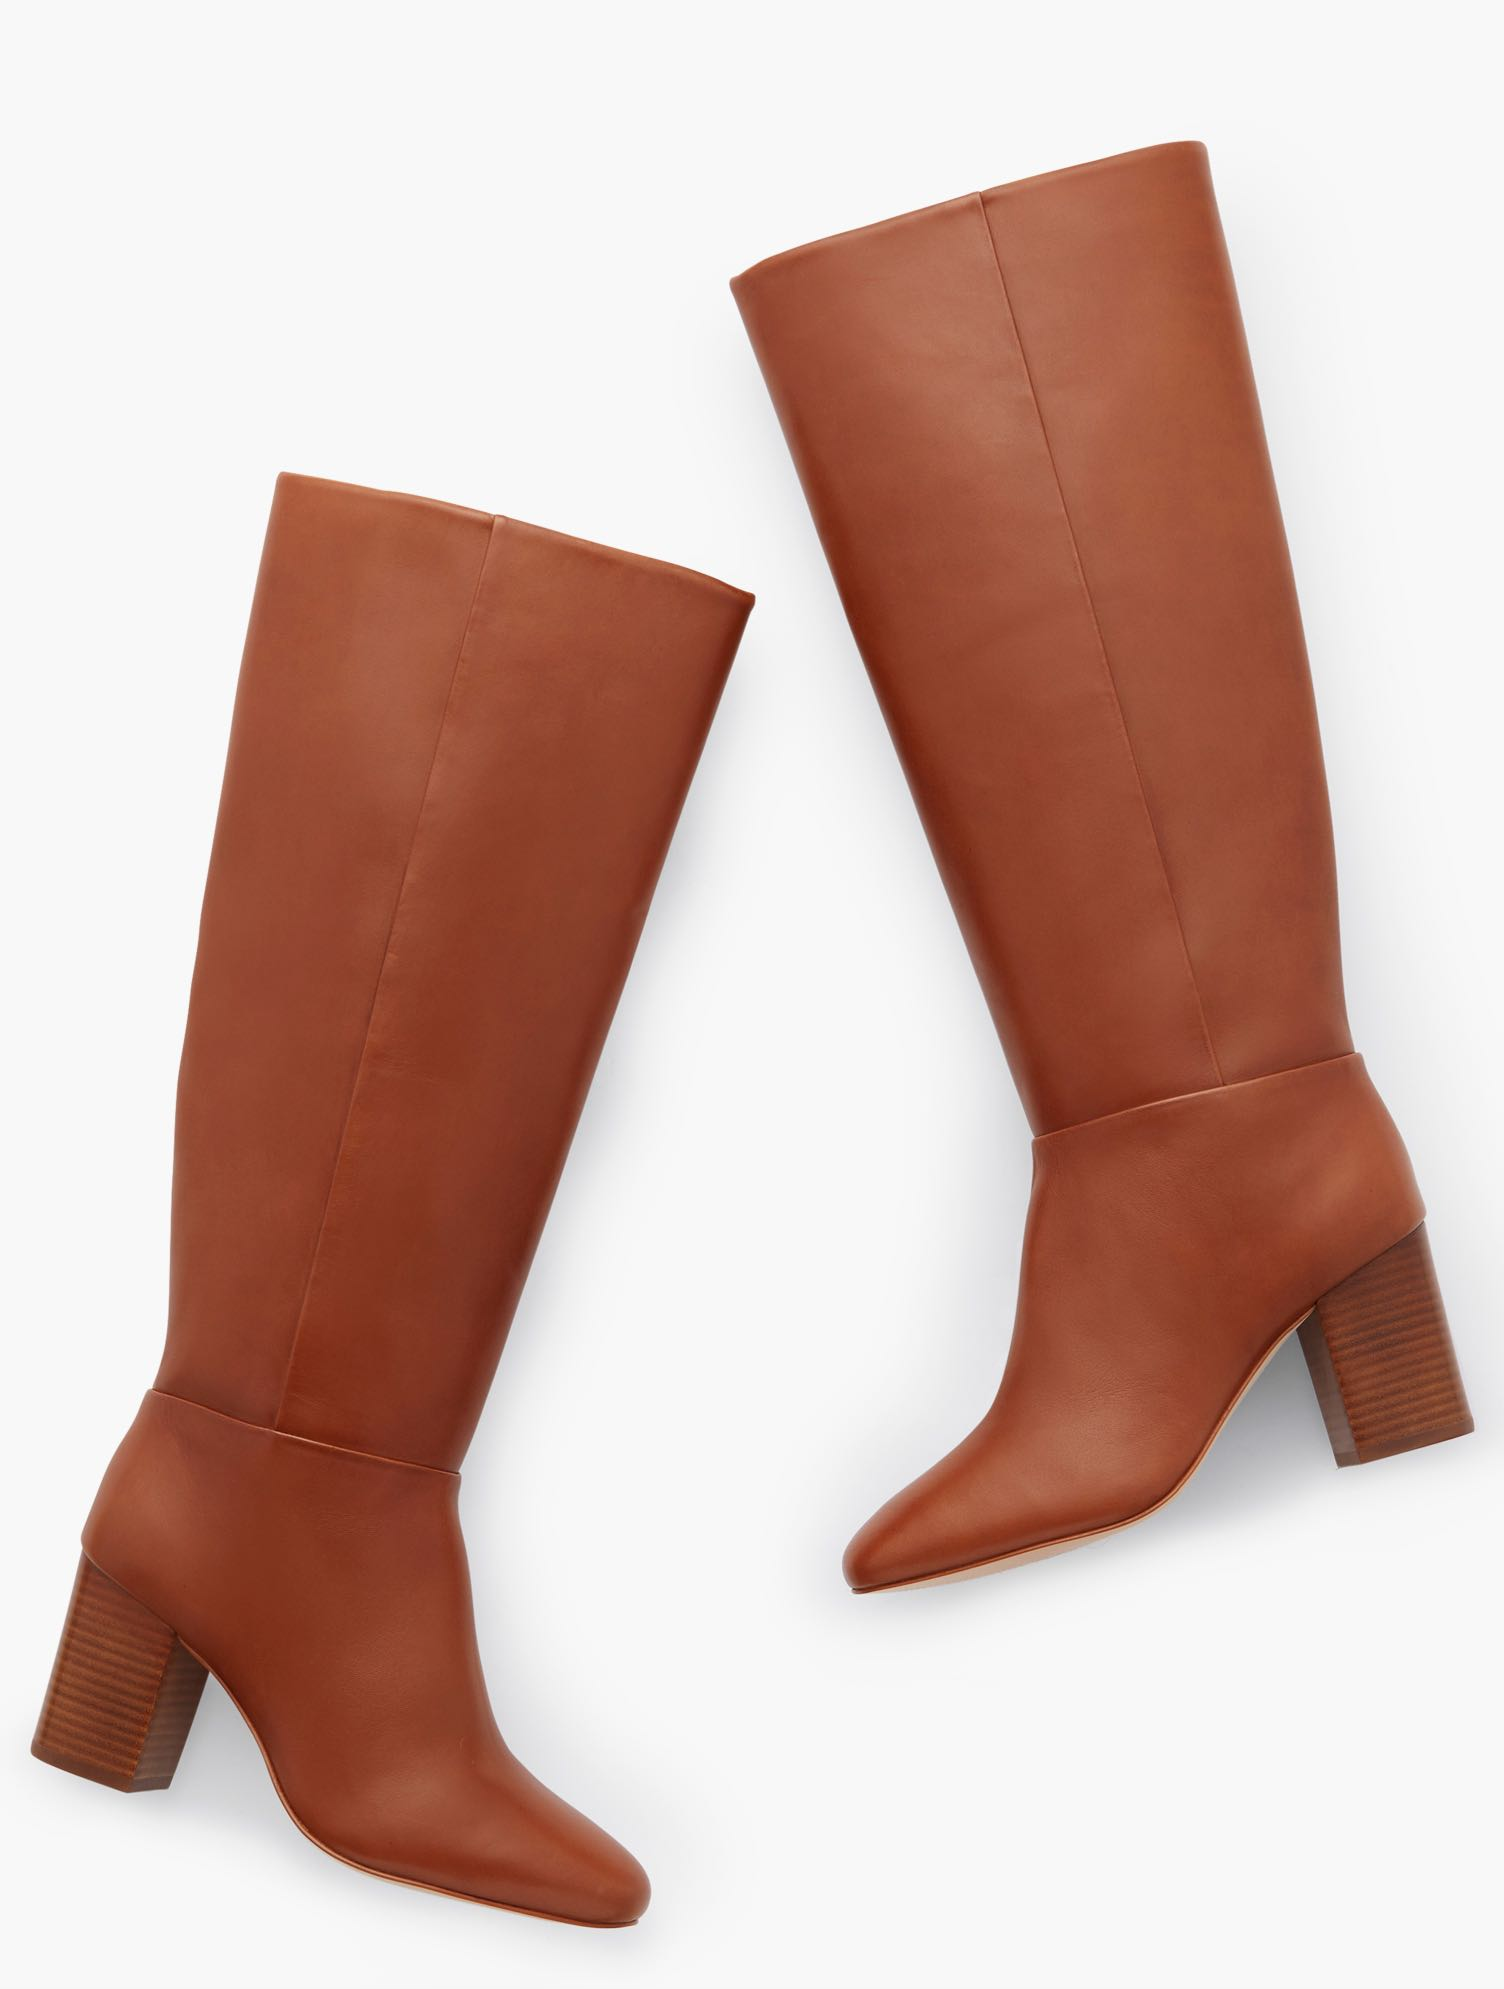 Our Darcy Tall Boots in luxurious Nappa leather look great dressed up or down. Also available in Extended Calf. Features 3MM Memory foam footbed 3 inches heel Round Toe Imported Material: 100% Leather Darcy Tall Nappa Boots - Cognac - 11M Talbots